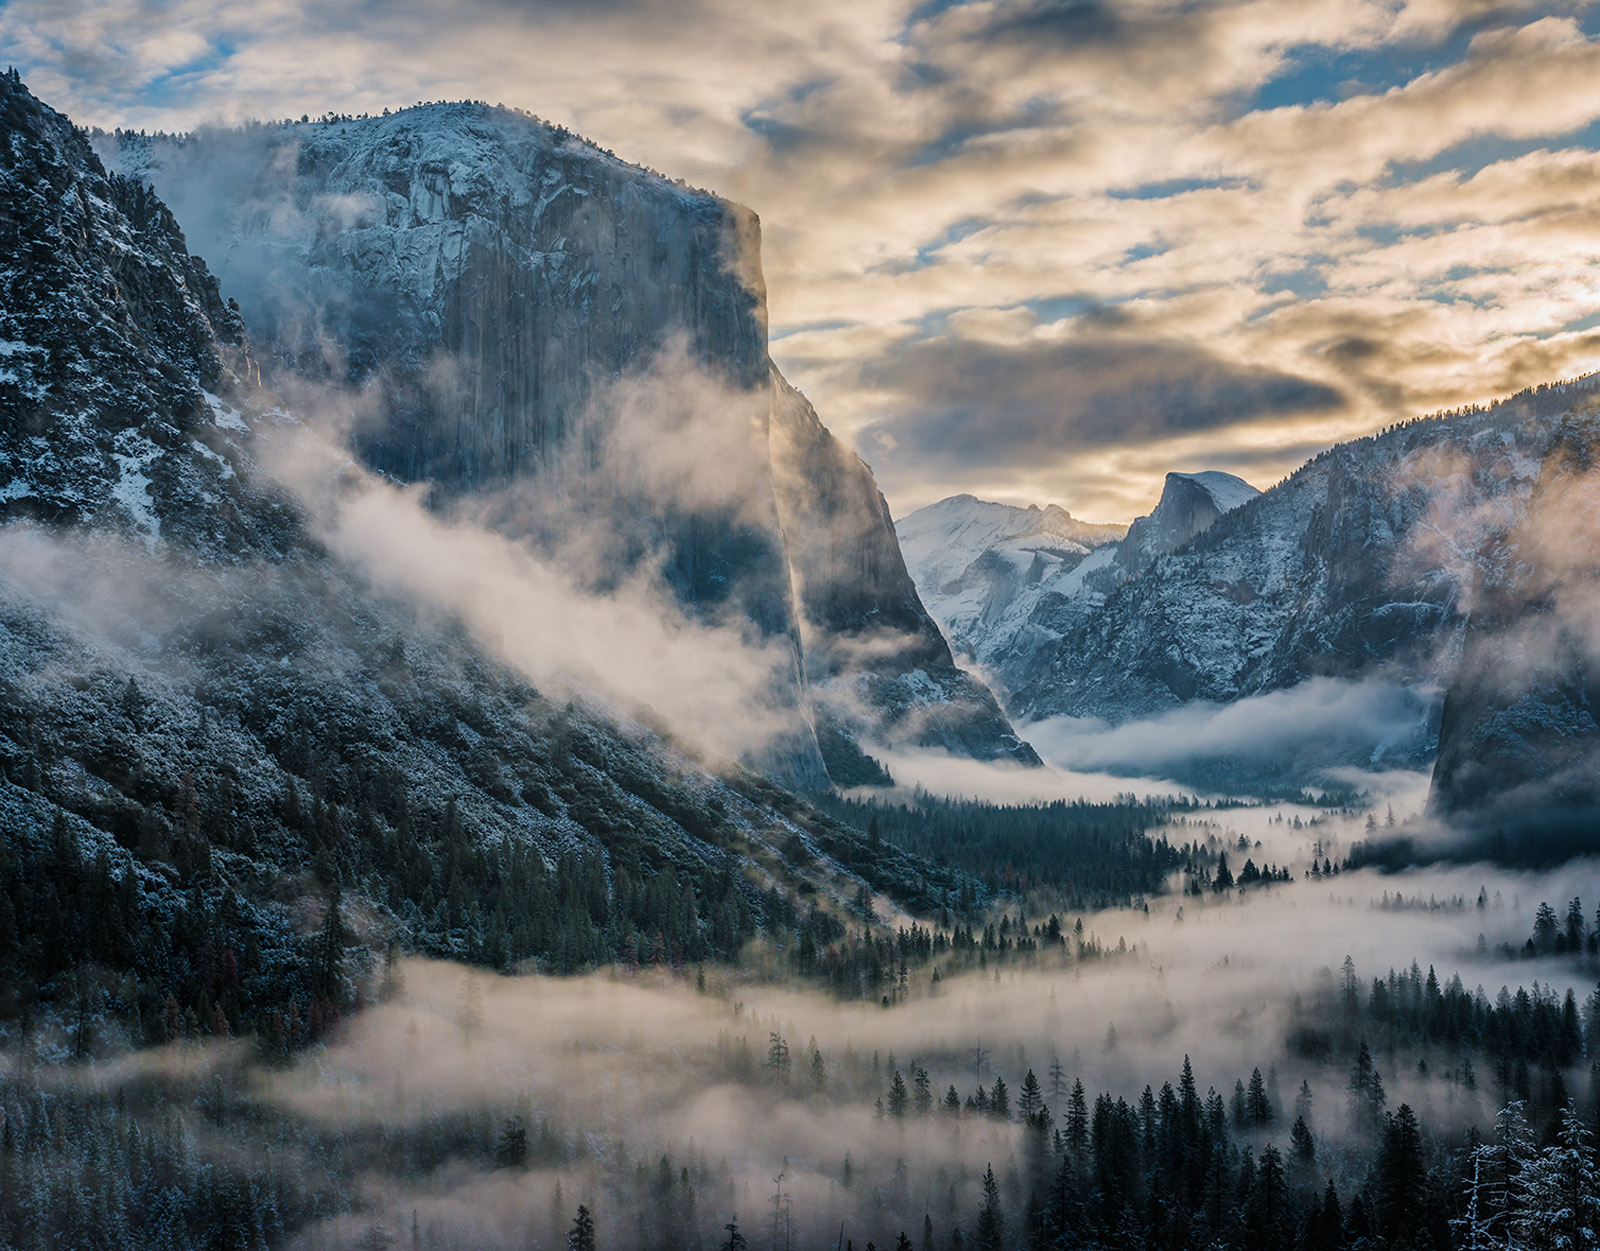 California, Yosemite, Yosemite Valley, Yosemite National Park, America, American West, west, landscape, icon, weather, snow, clouds, cold, cool, winter, fresh, morning, sunrise, storm, stormy, cloudy,, photo